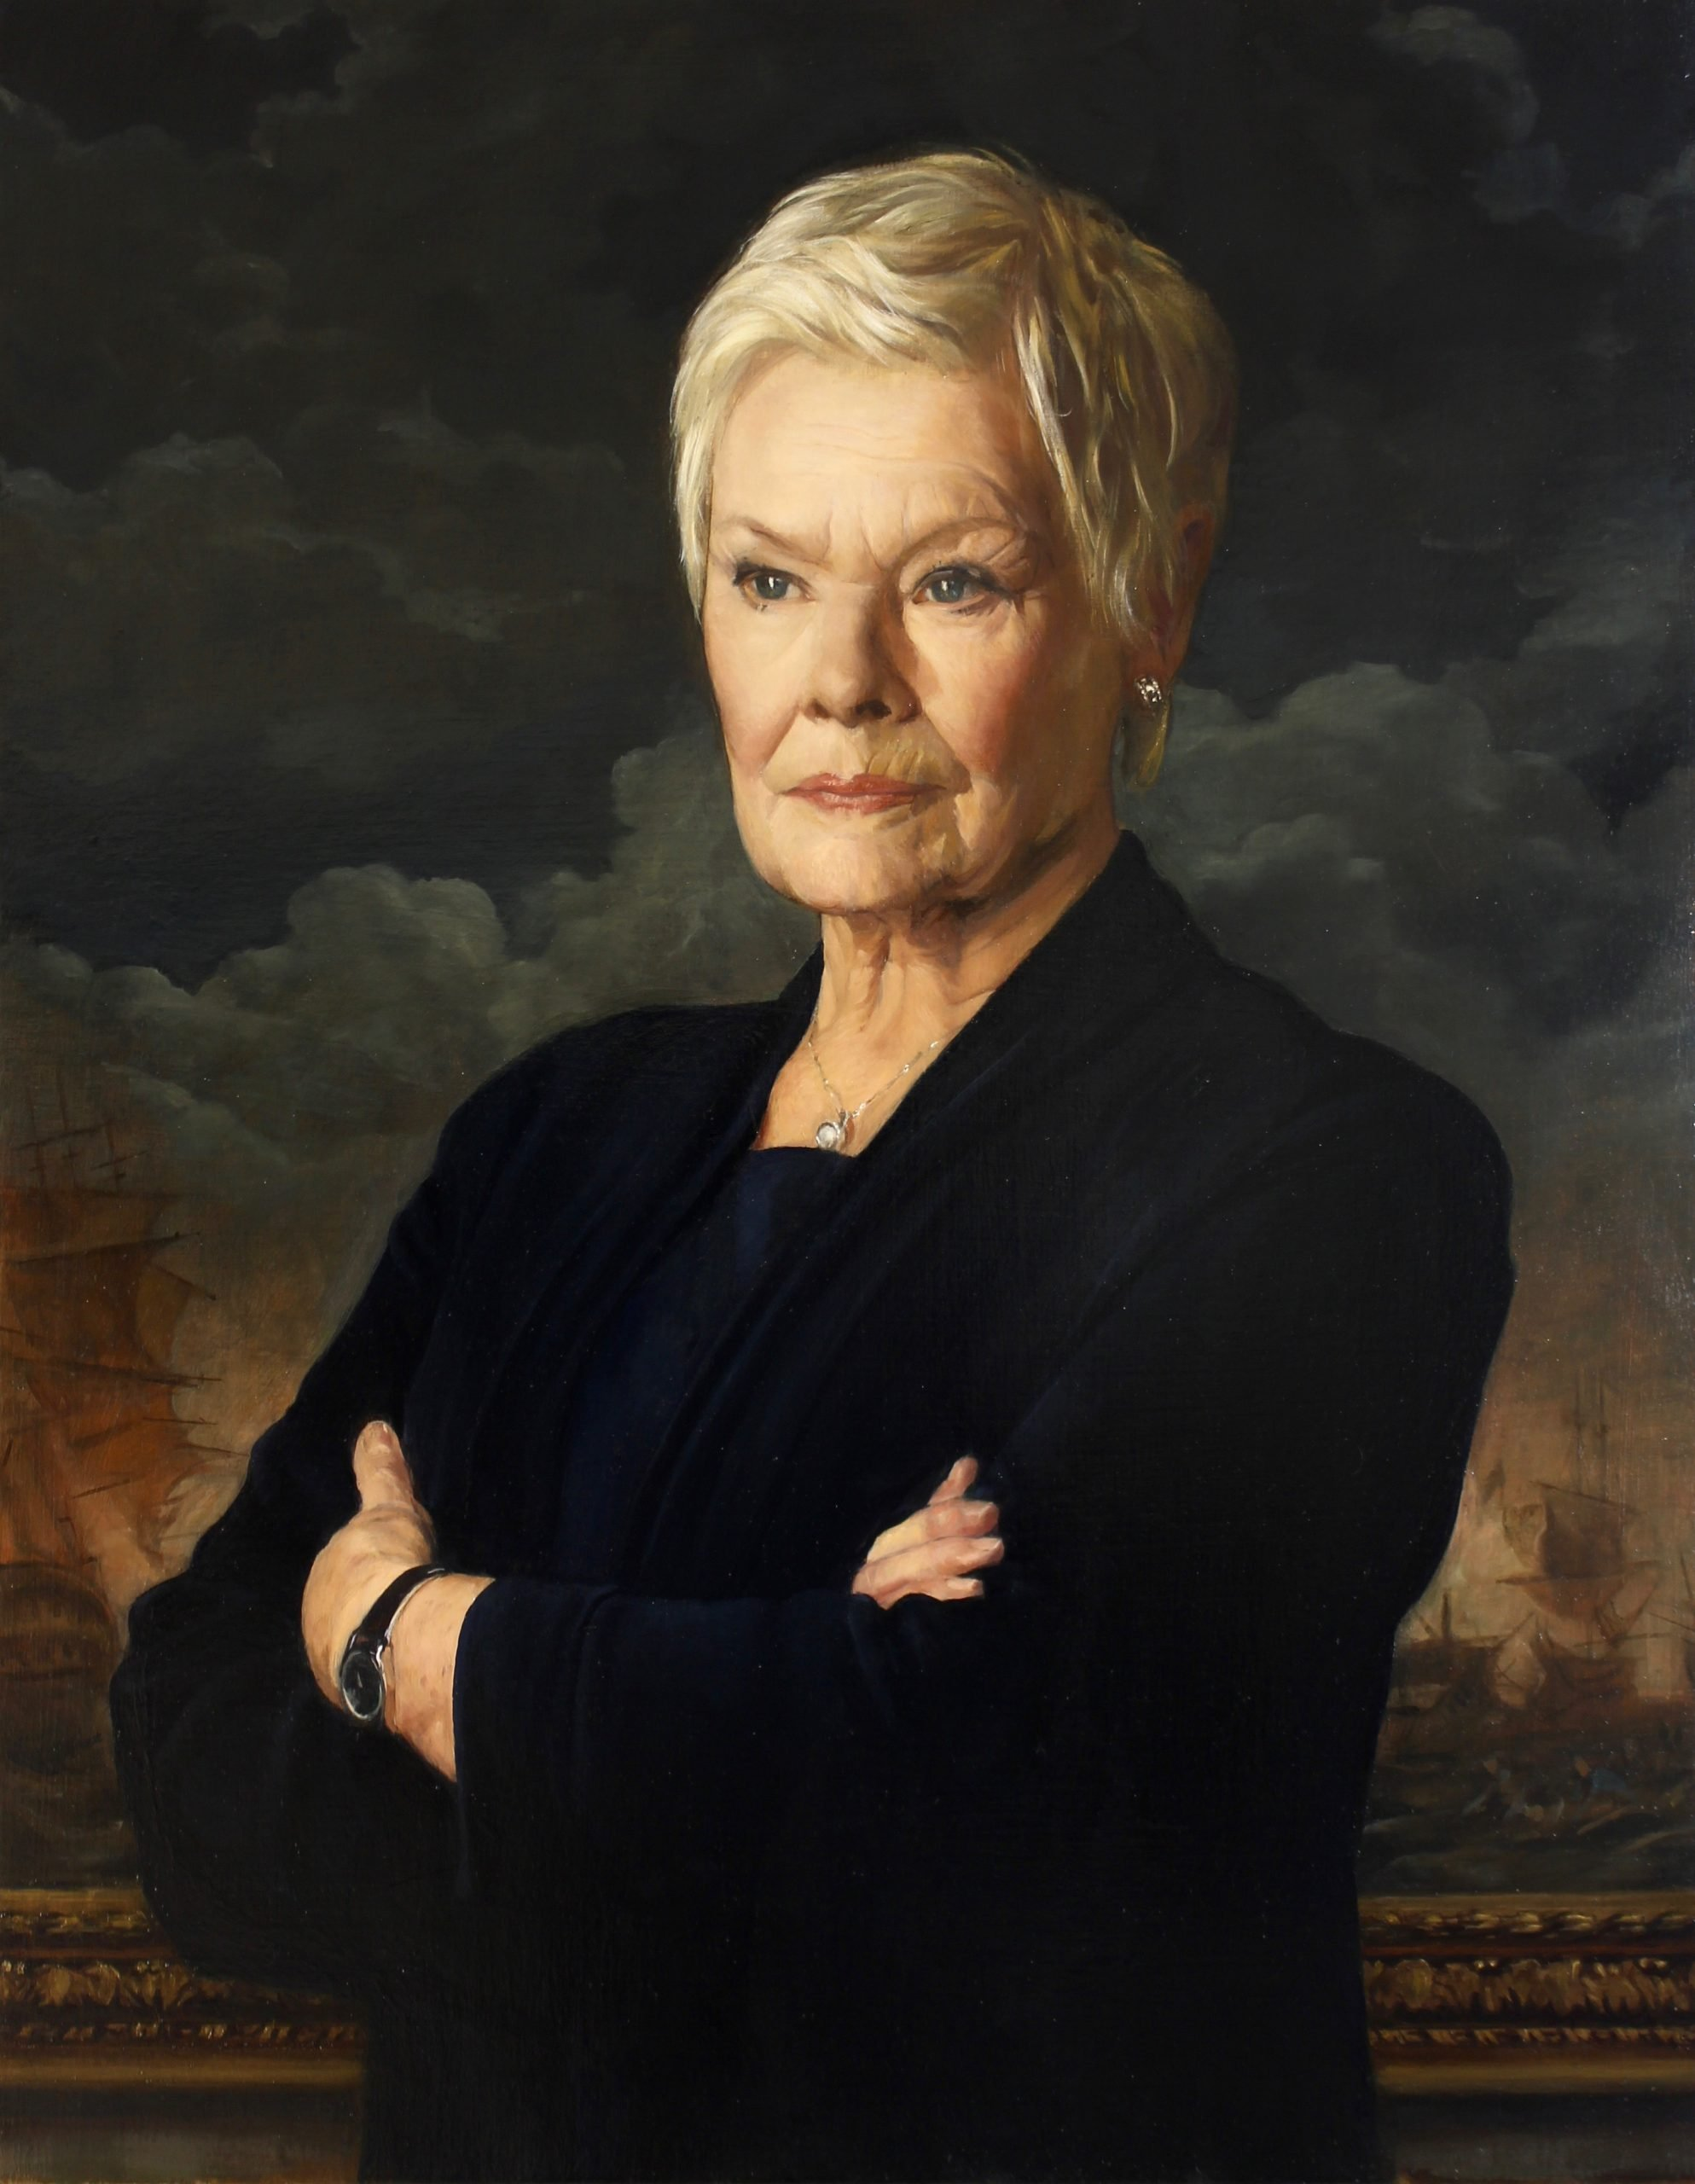 Oil portrait of Judi Dench as M by Desmond Mac Mahon for the film No Time to Die, James Bond